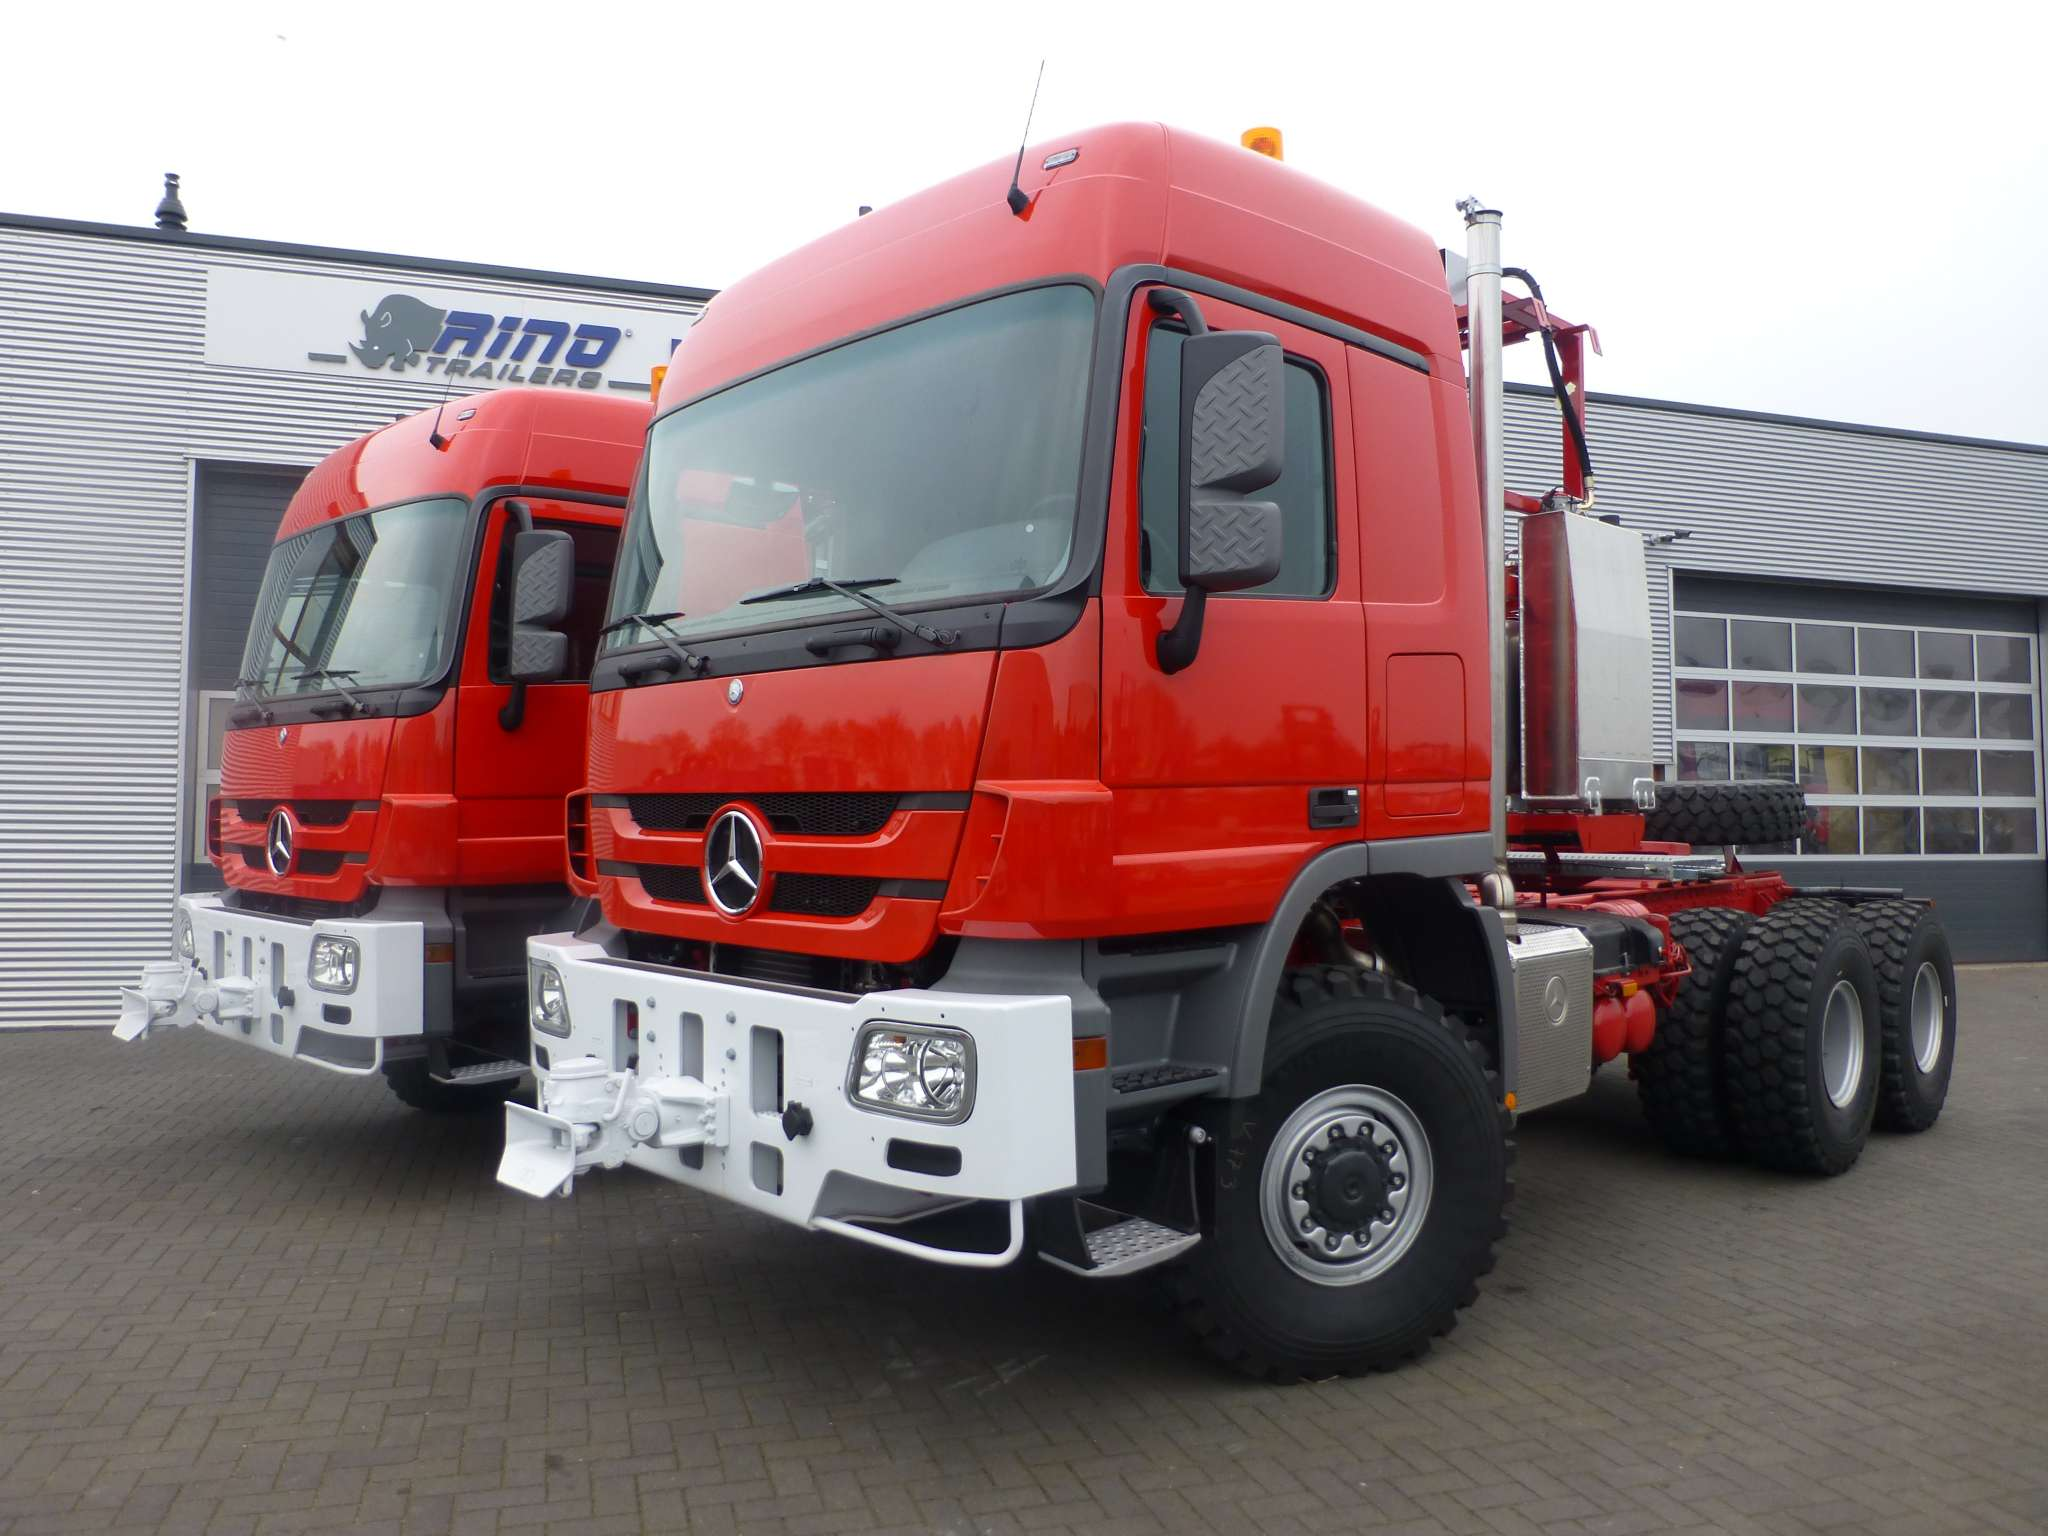 Mercedes Benz heavy duty tractor head 6x6 350 ton plus, push pull, from stock available